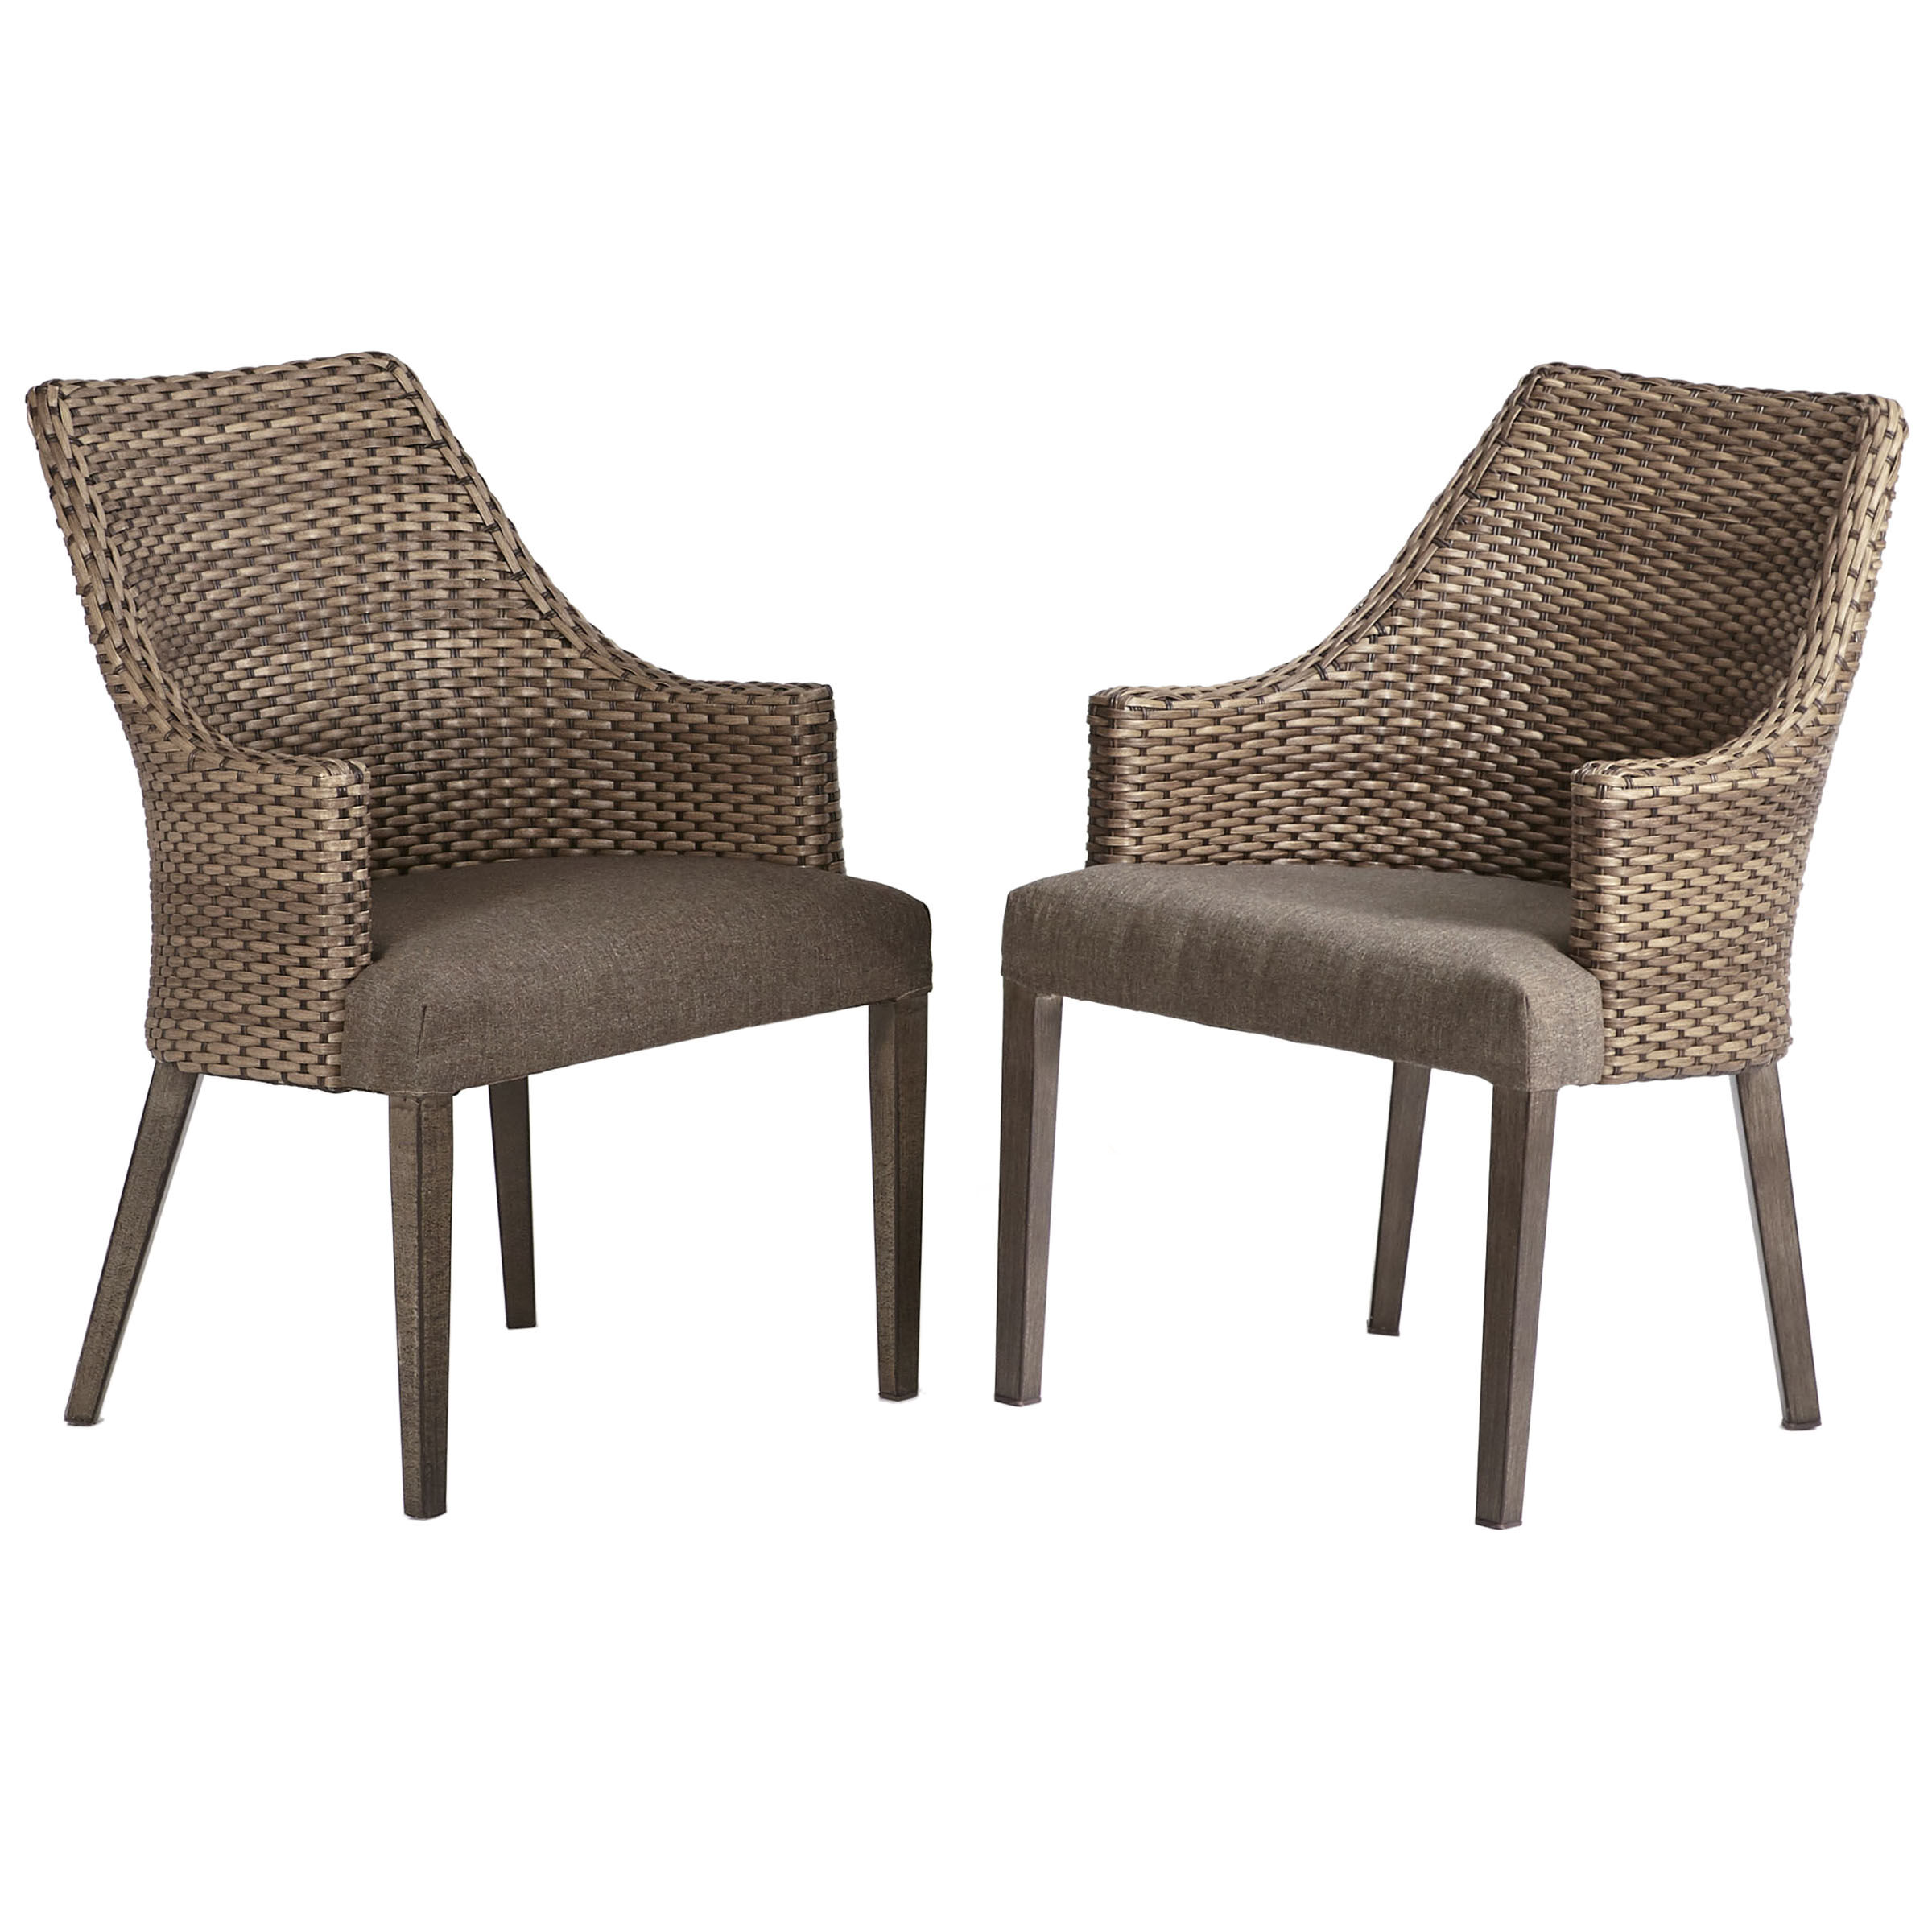 at home chairs ergonomic chair staples camden set of 2 dining zoom